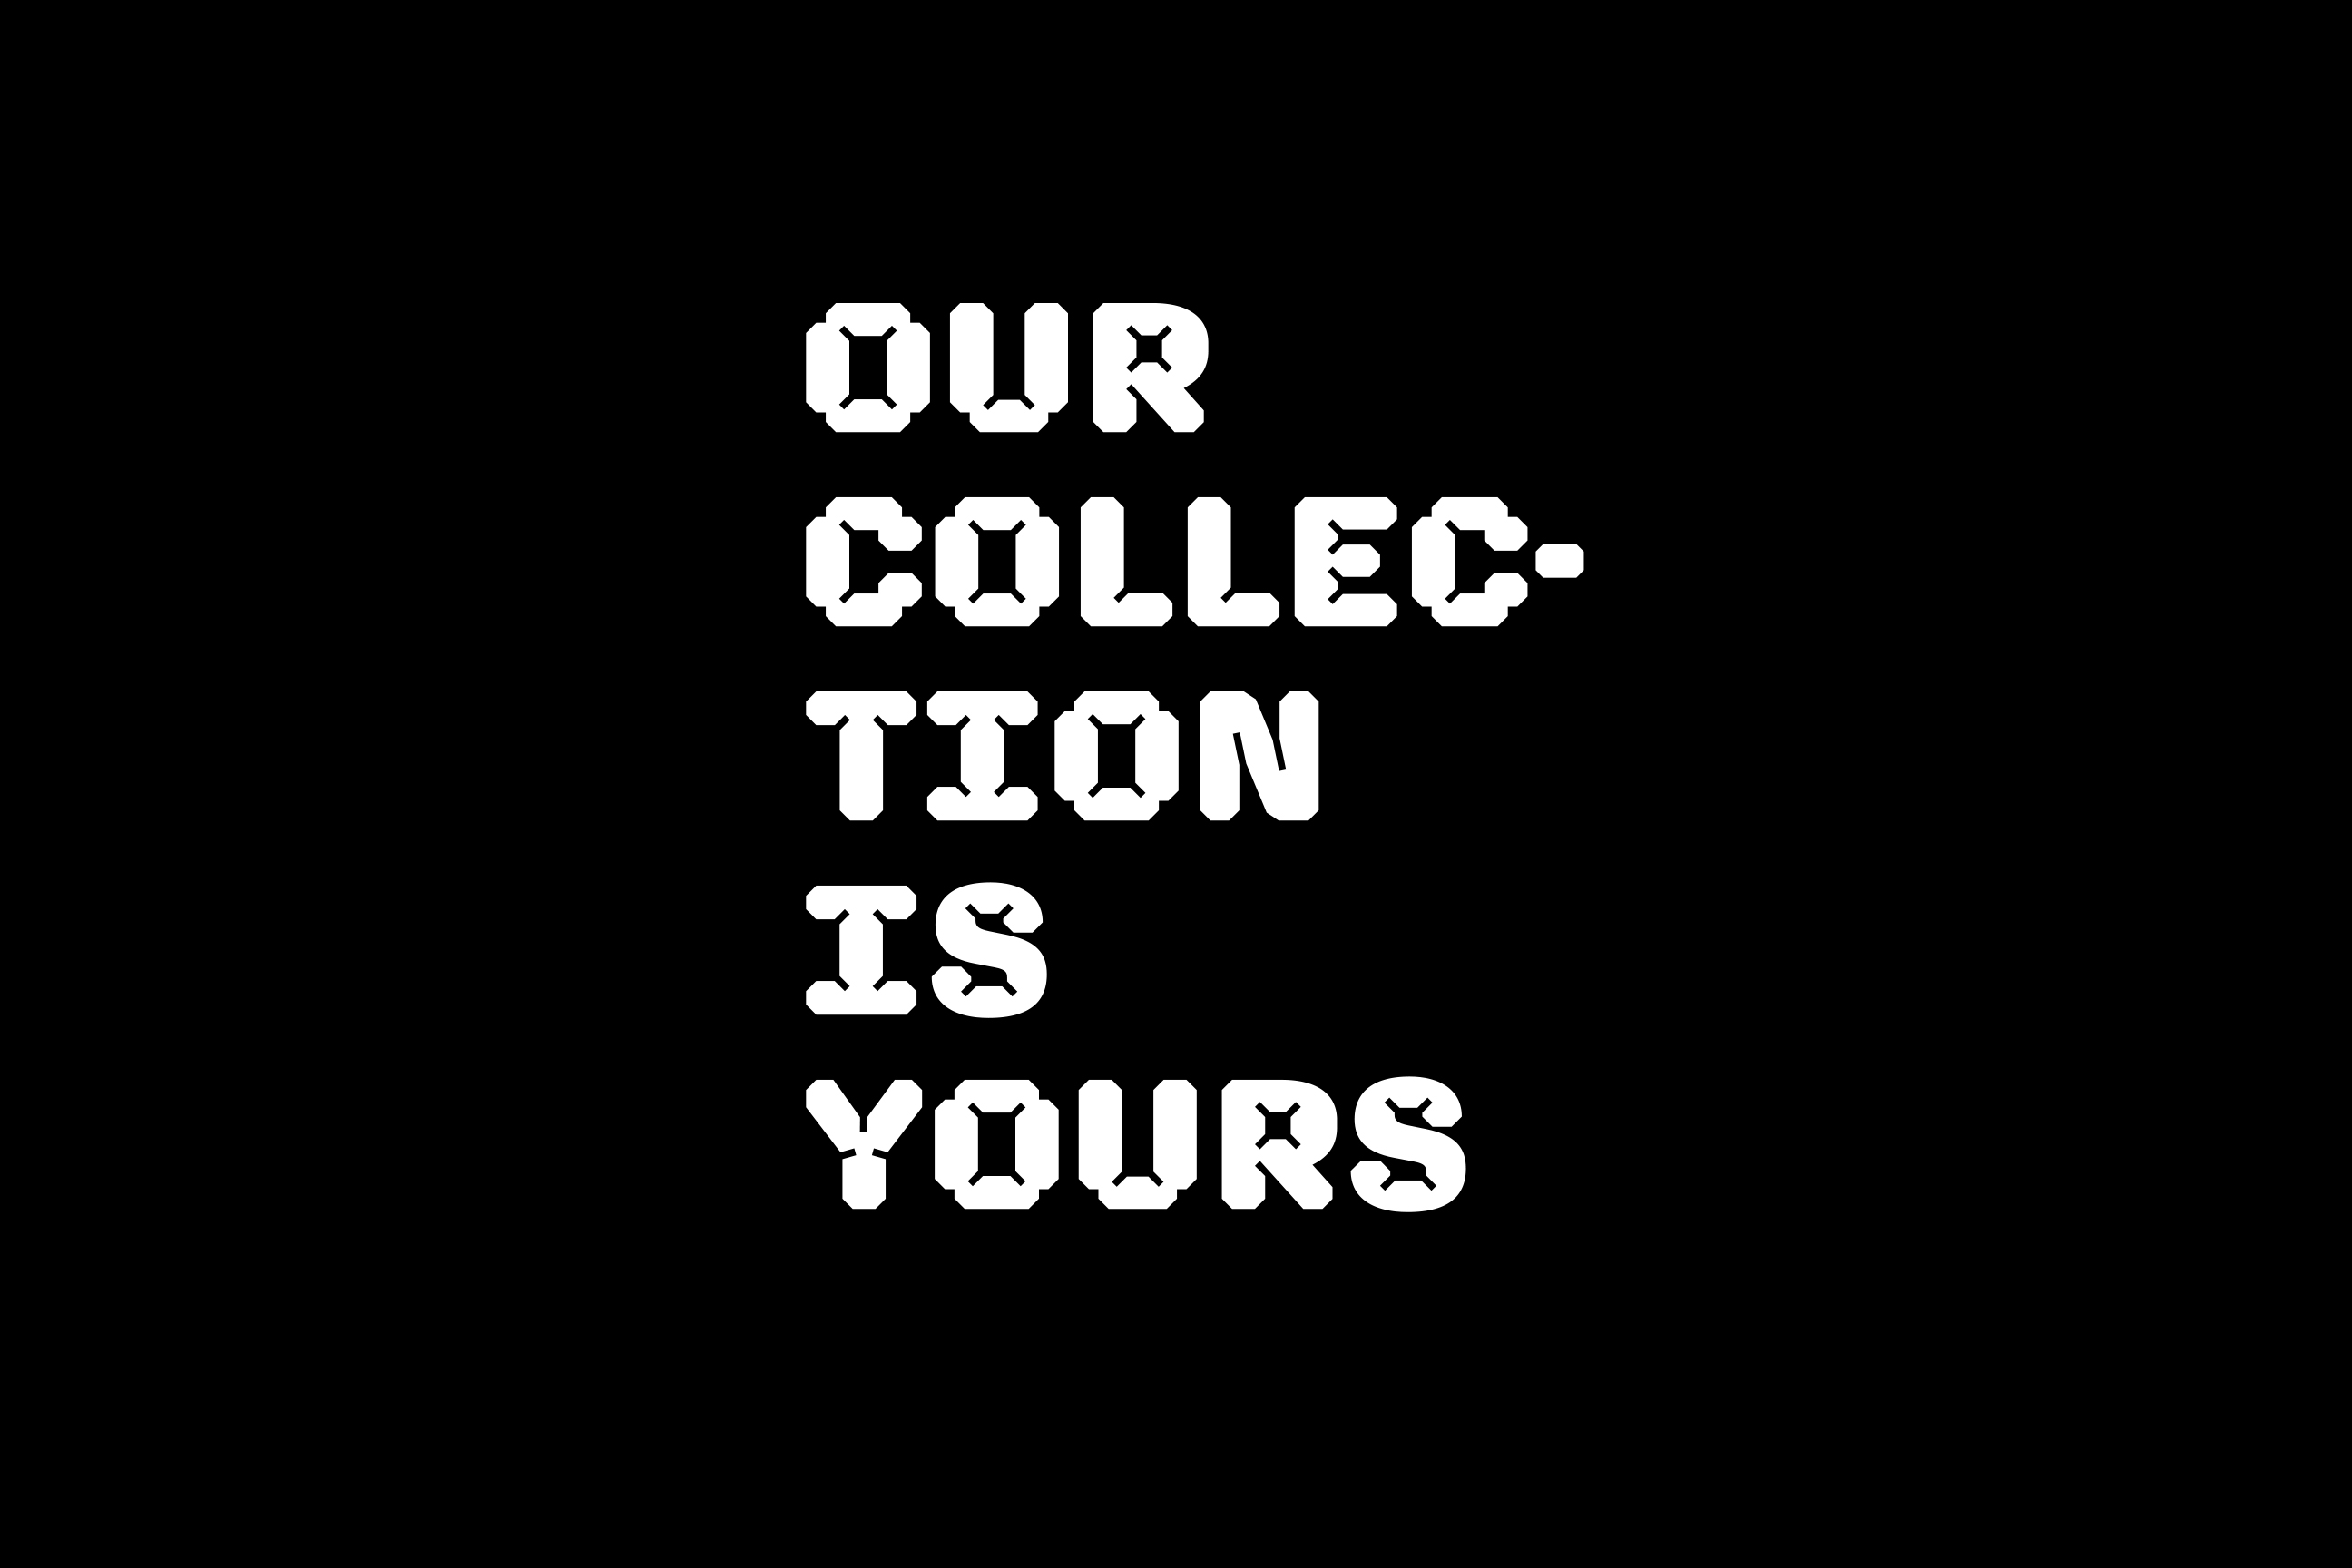 Our collection is yours